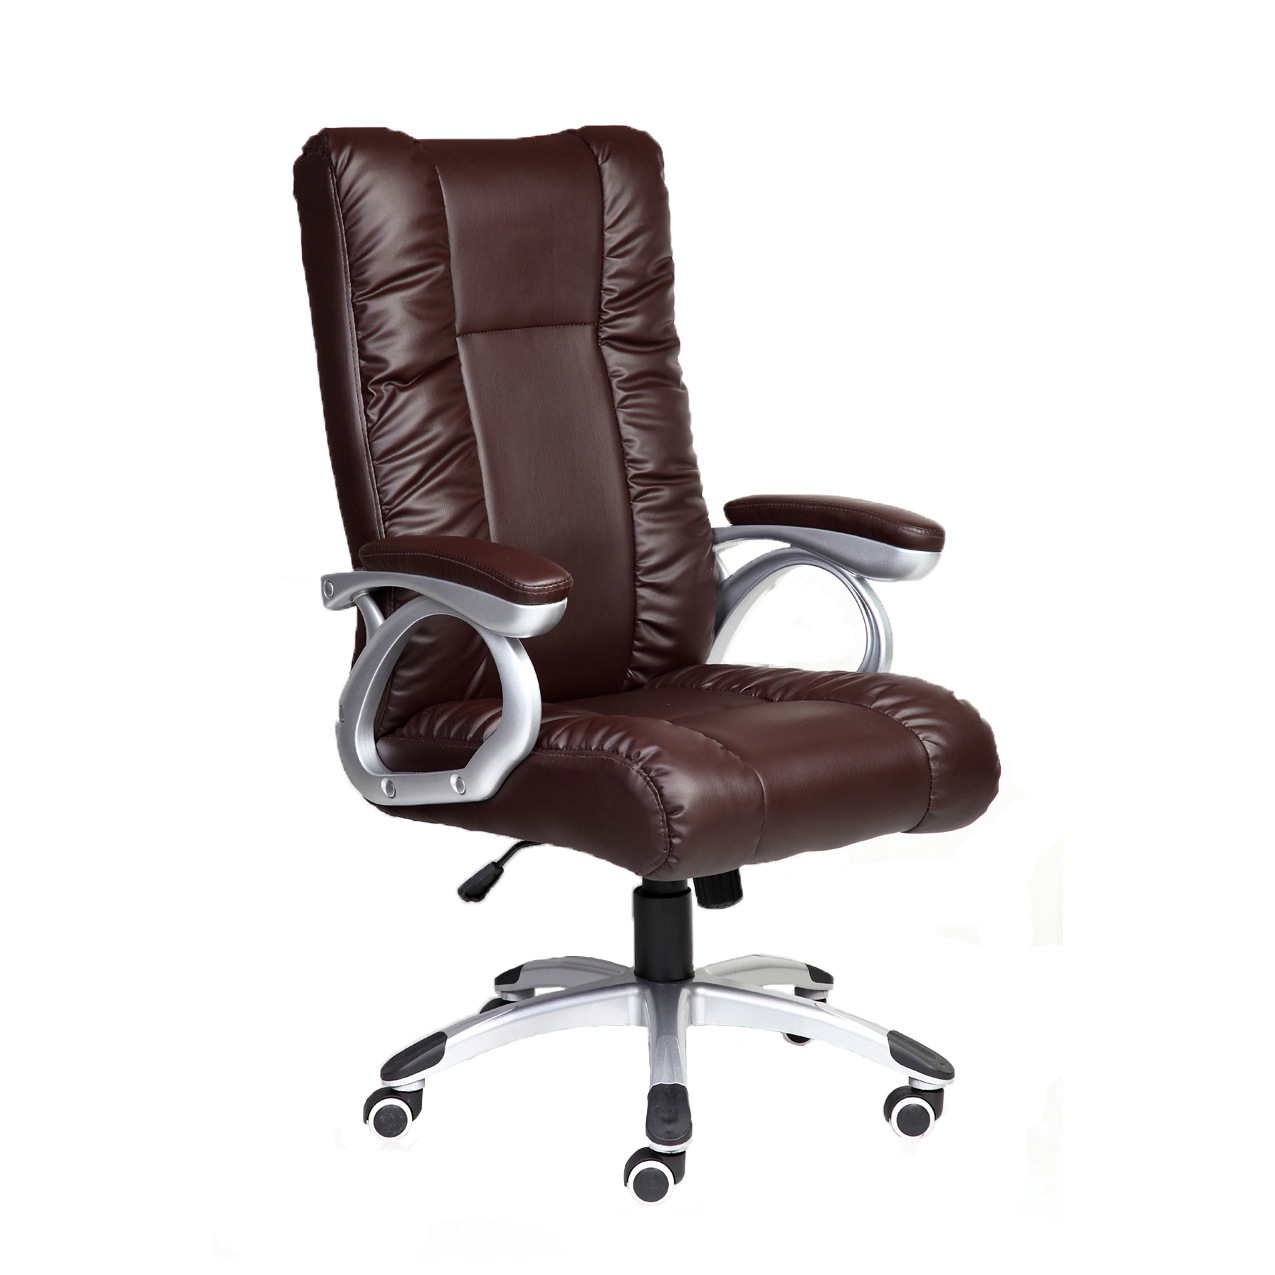 Where Can I Buy Cheap Chairs: Popular Recliner Swivel Chair-Buy Cheap Recliner Swivel